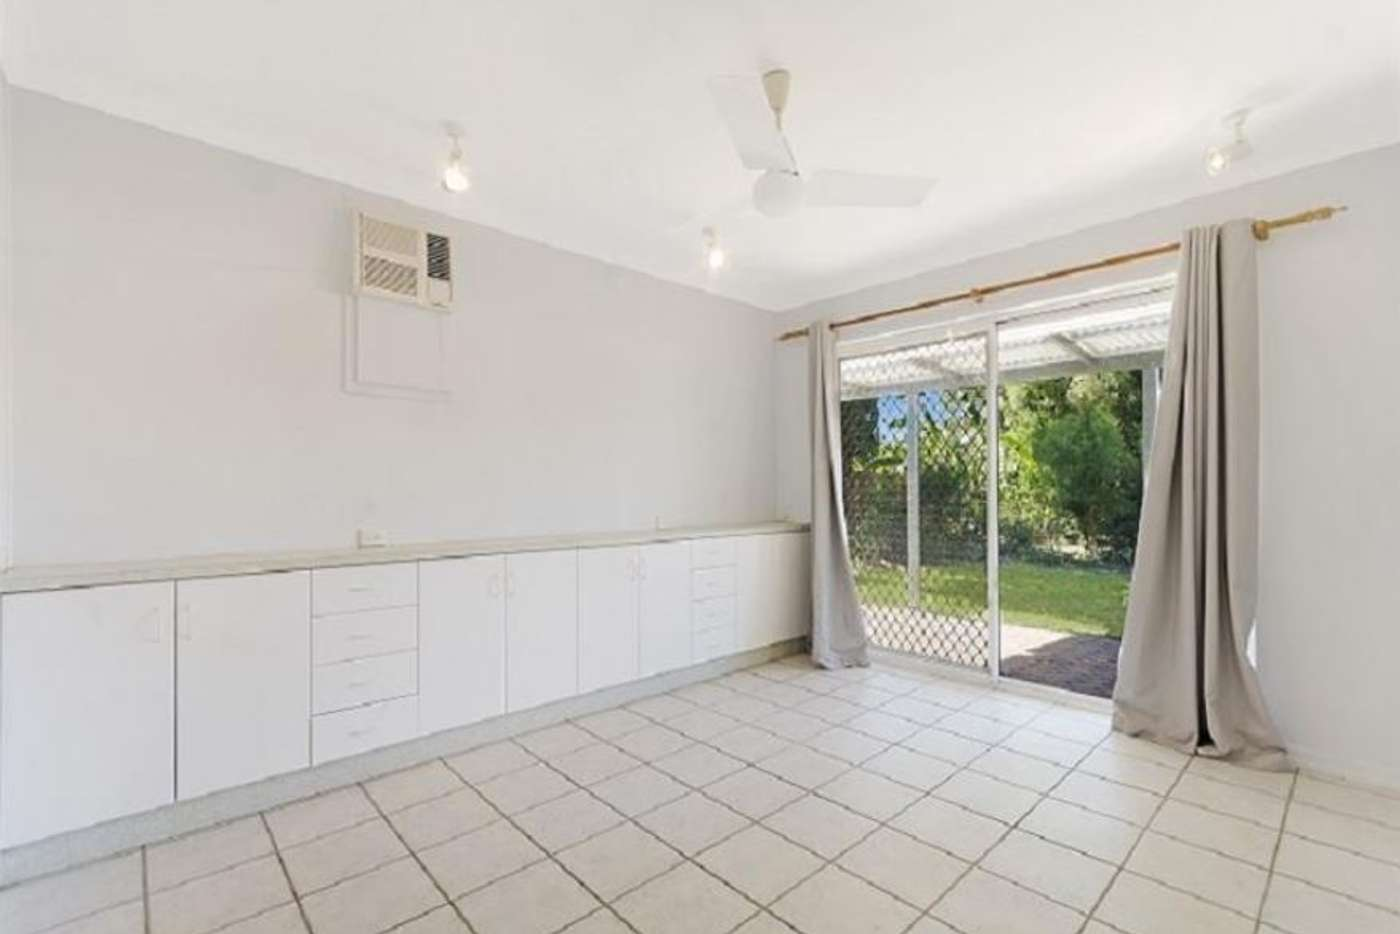 Seventh view of Homely house listing, 26 Masuda Street, Annandale QLD 4814